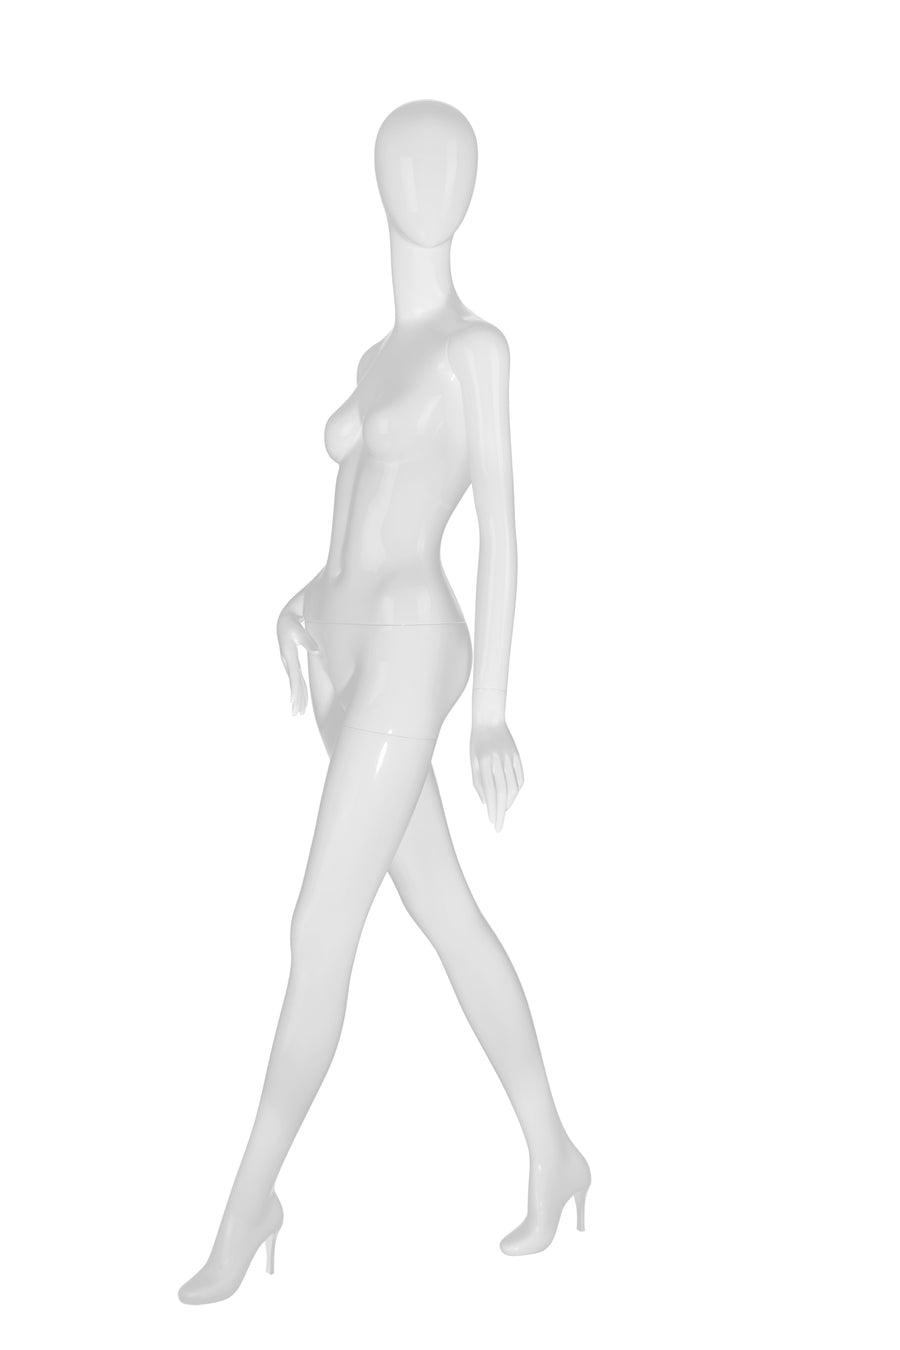 pure white female mannequin with blank face, right arm resting on hip, left leg stepping forward